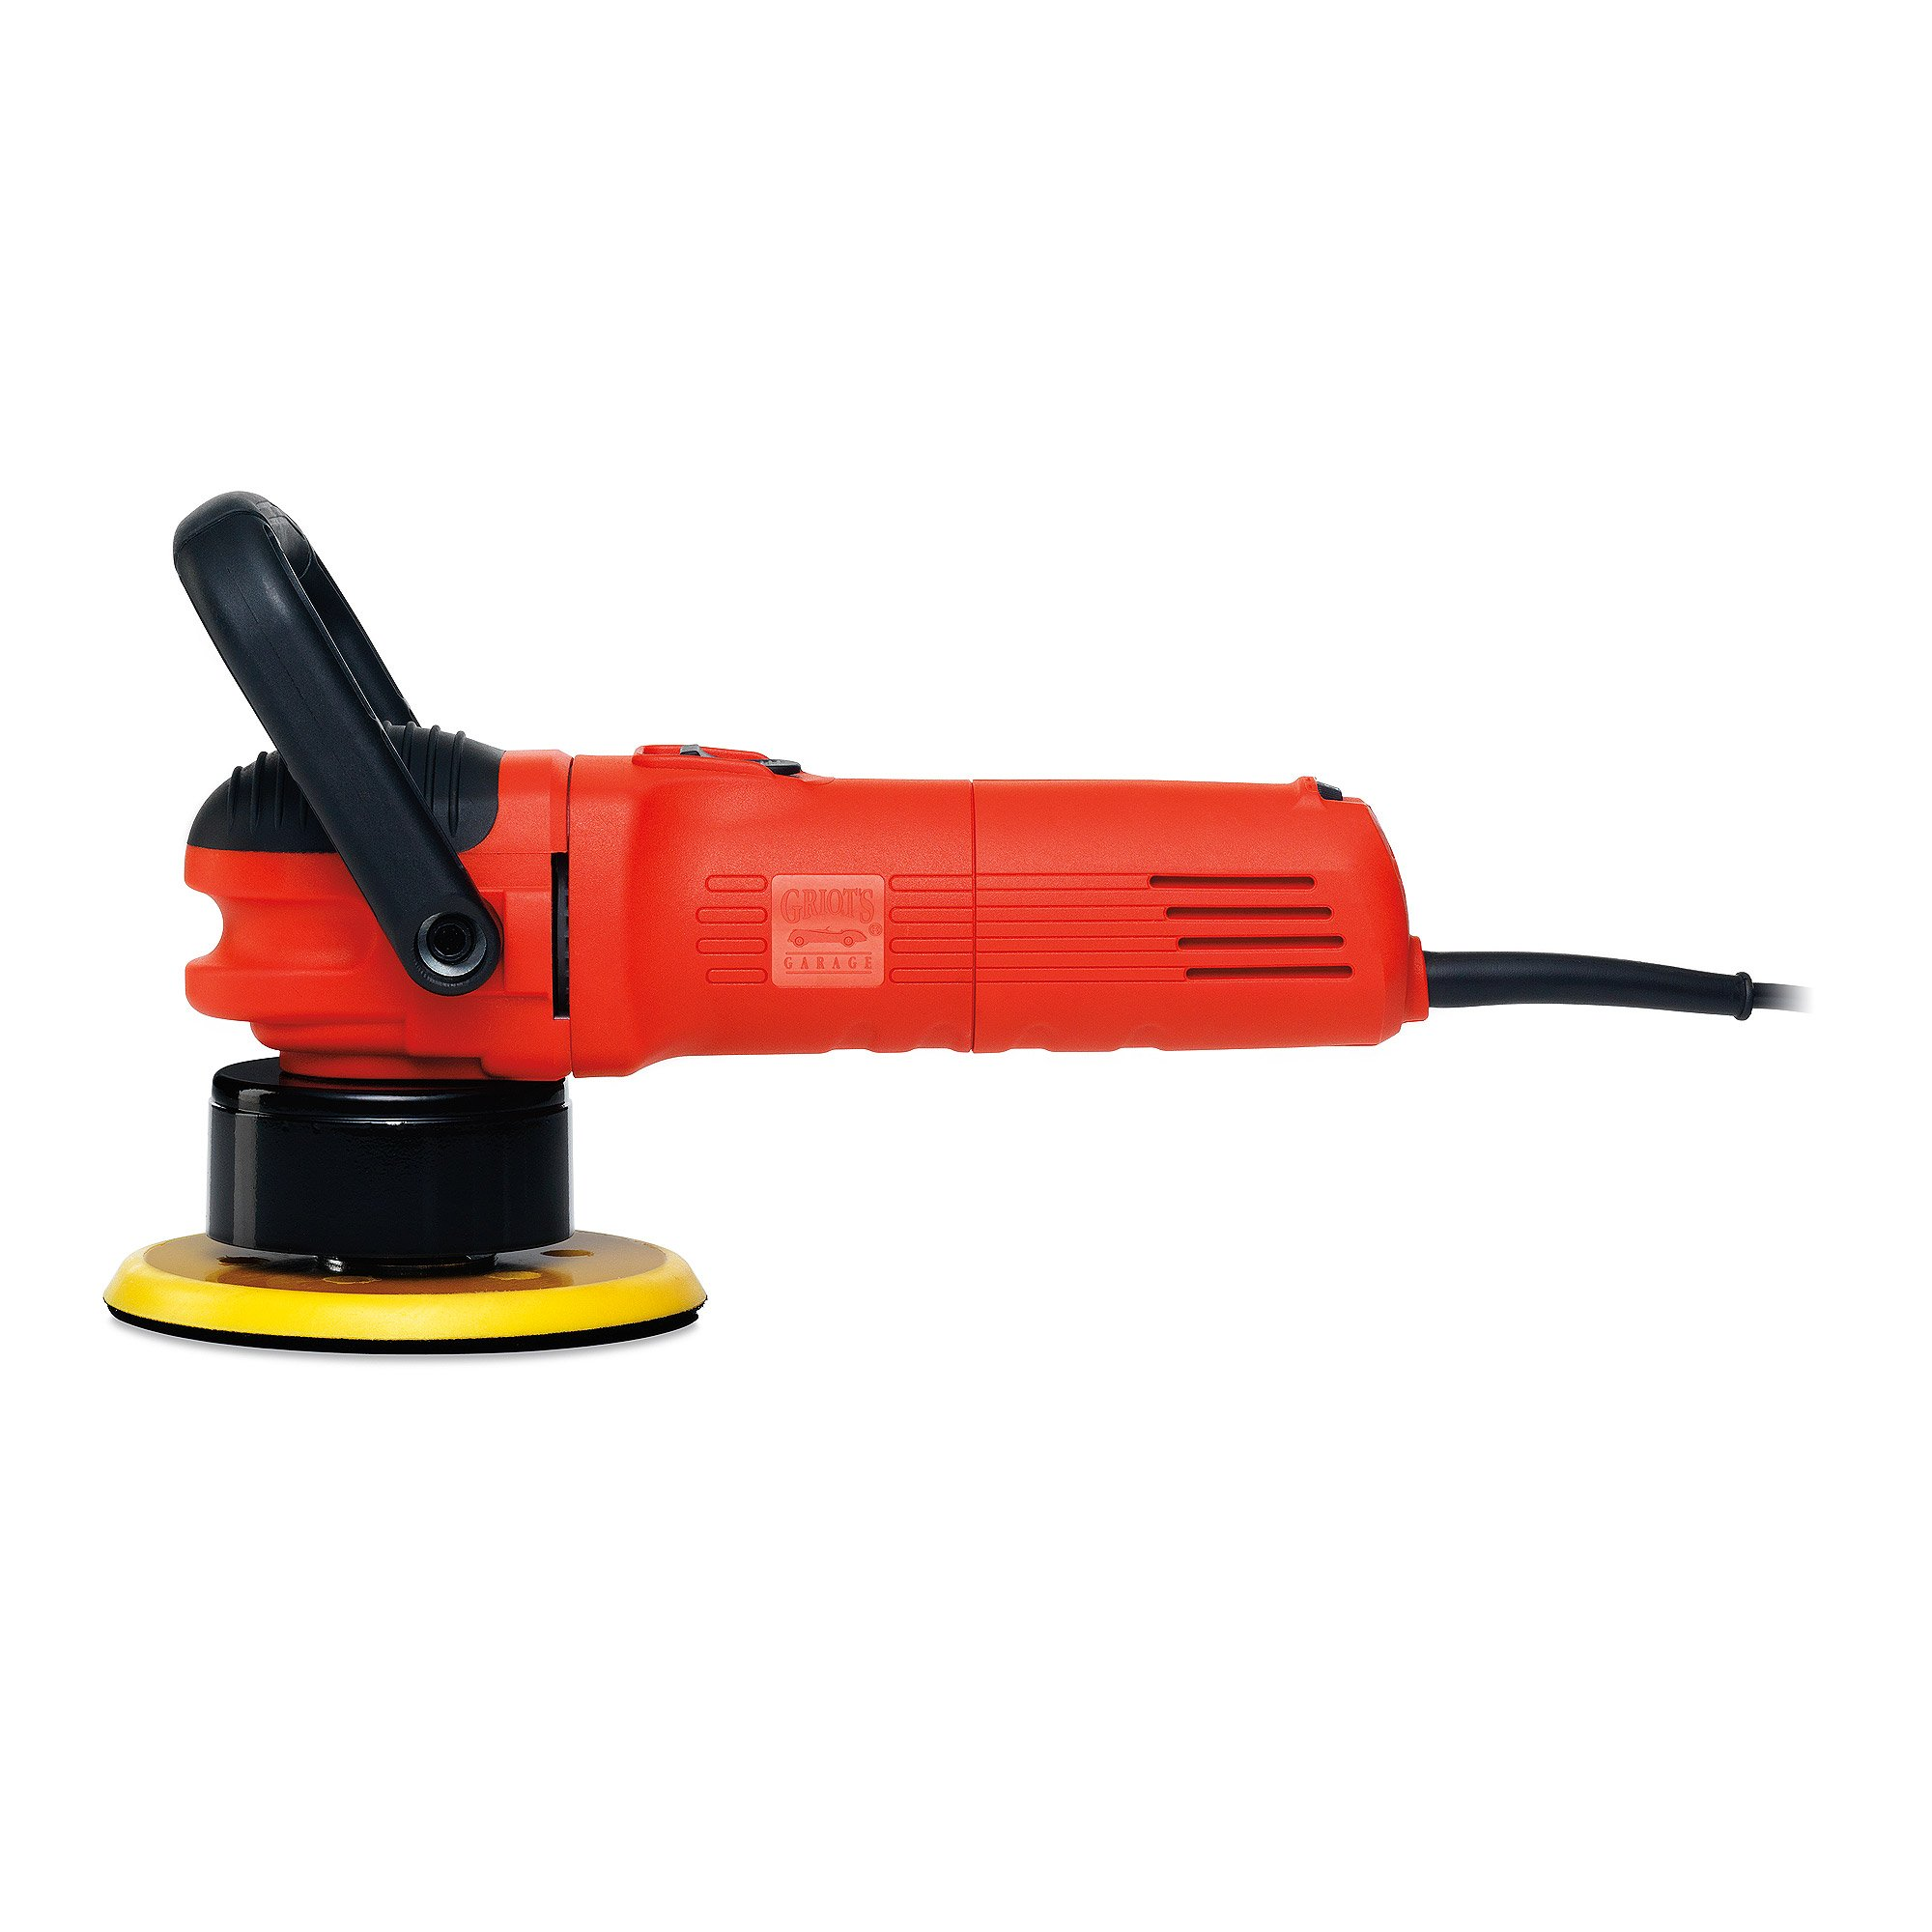 Griot's Garage 10813STDCRD 6'' Dual Action Random Orbital Polisher with 10' Cord by Griot's Garage (Image #4)